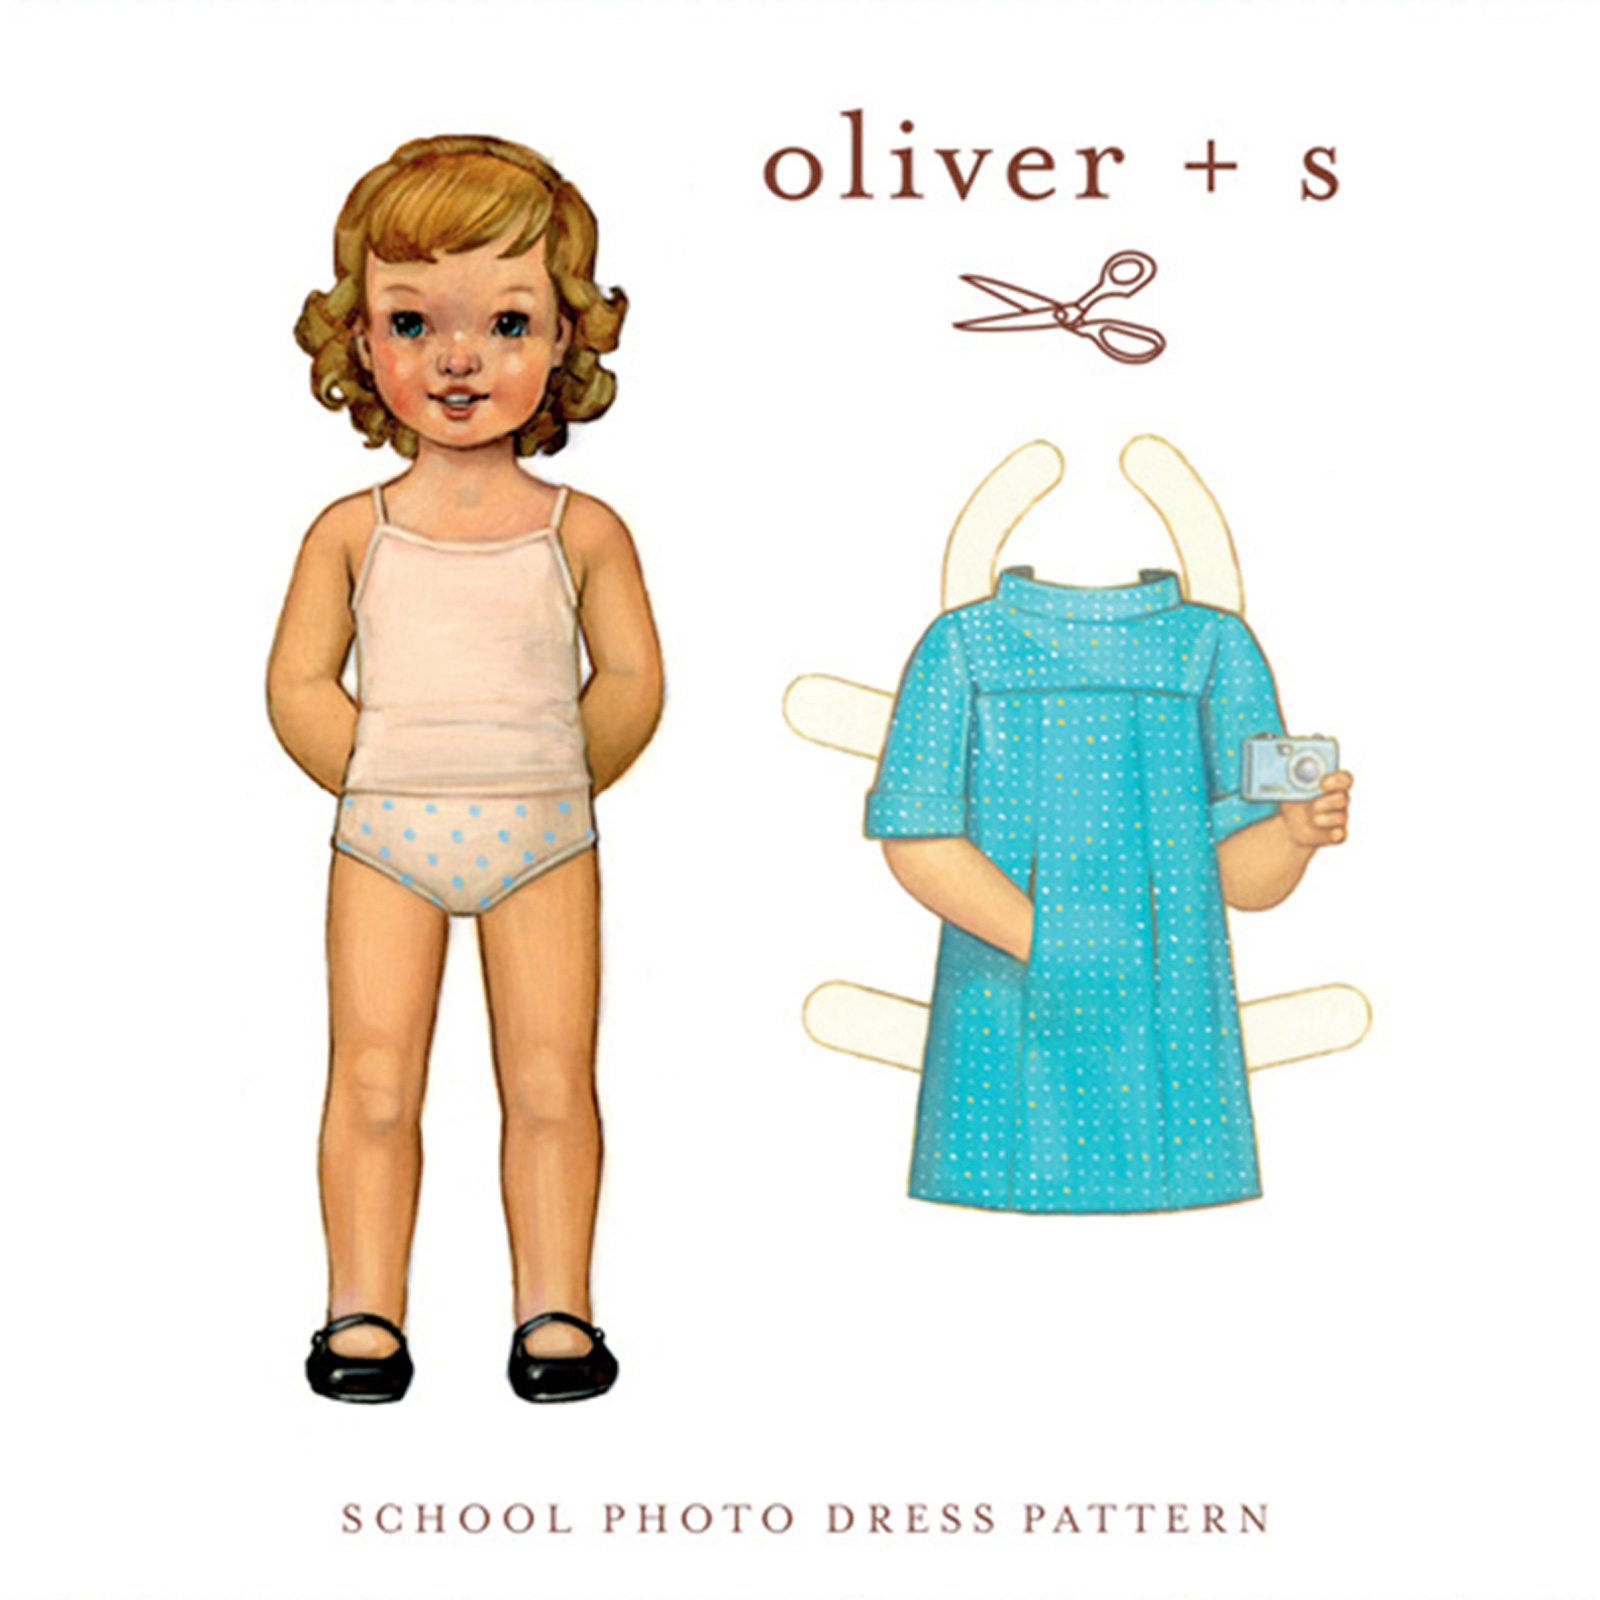 Oliver + S School Photo Dress Pattern Sizes